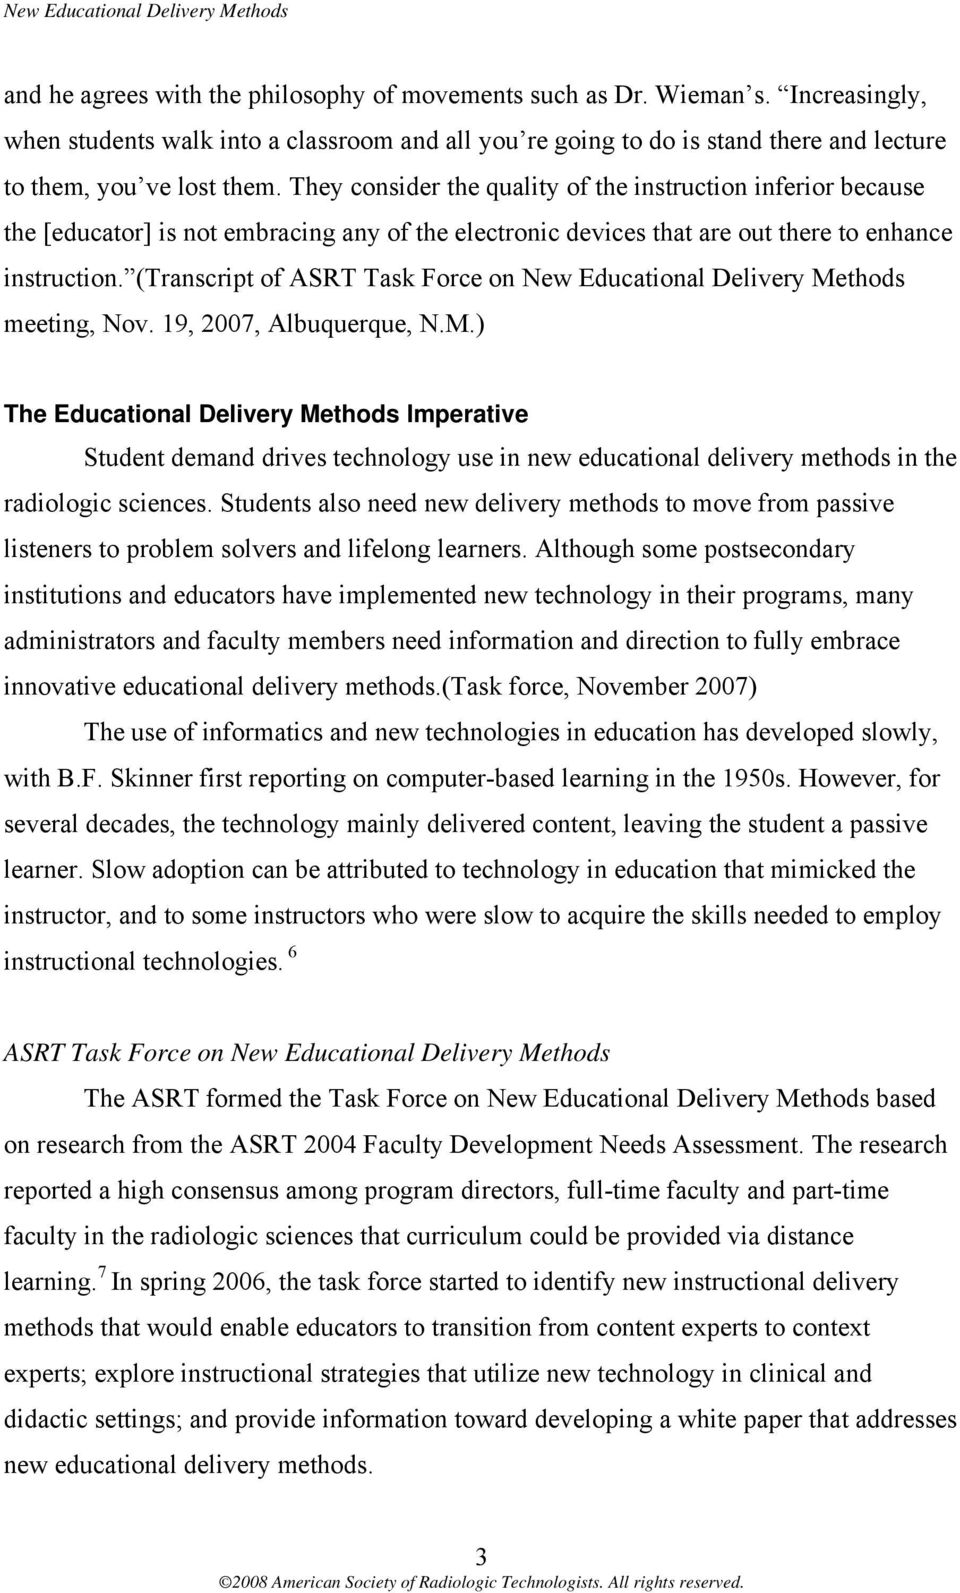 (Transcript of ASRT Task Force on New Educational Delivery Me